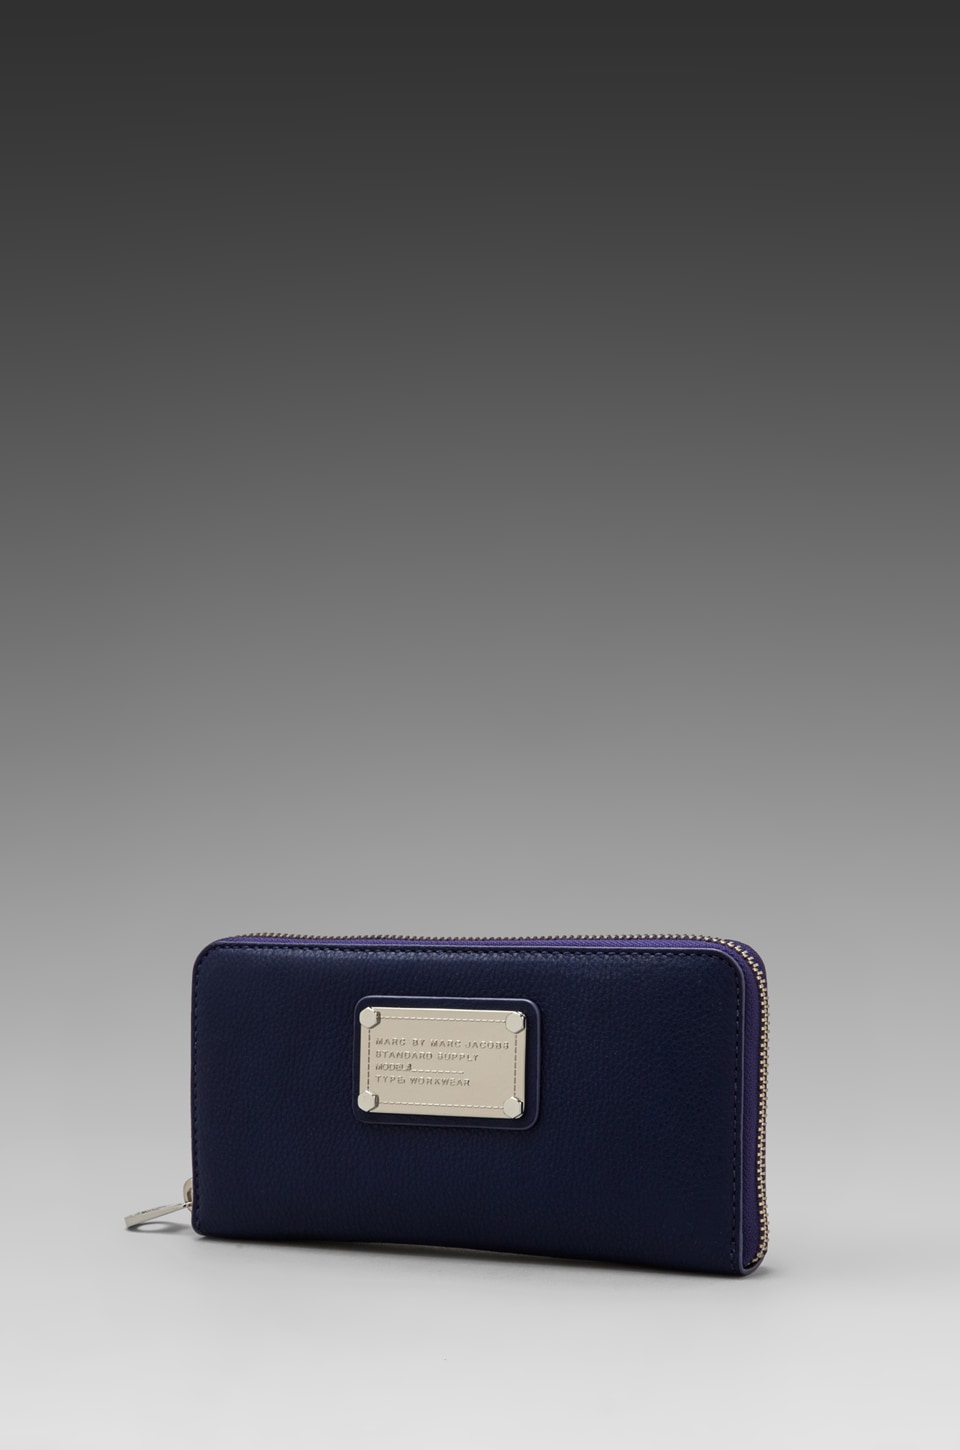 Marc by Marc Jacobs Classic Q Vertical Zippy in Electric Stage Blue